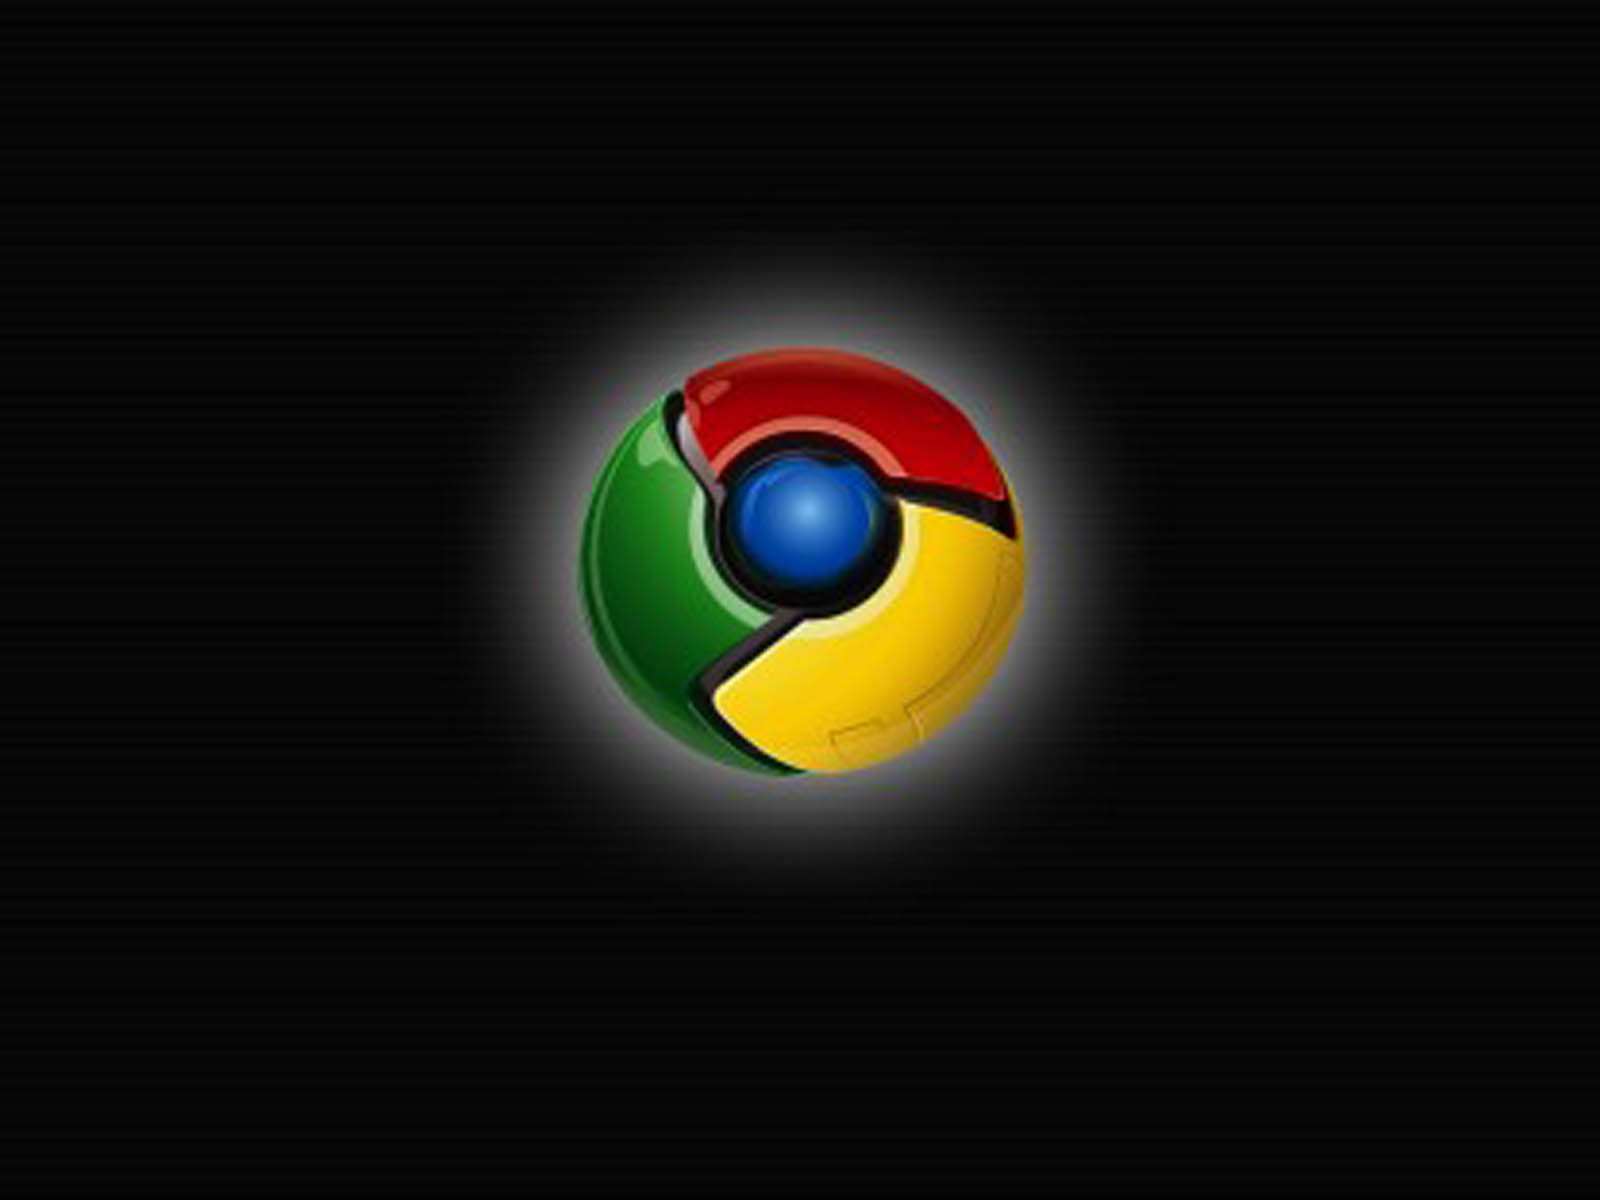 Google Chrome Wallpapers Images Photos Pictures and Backgrounds 1600x1200